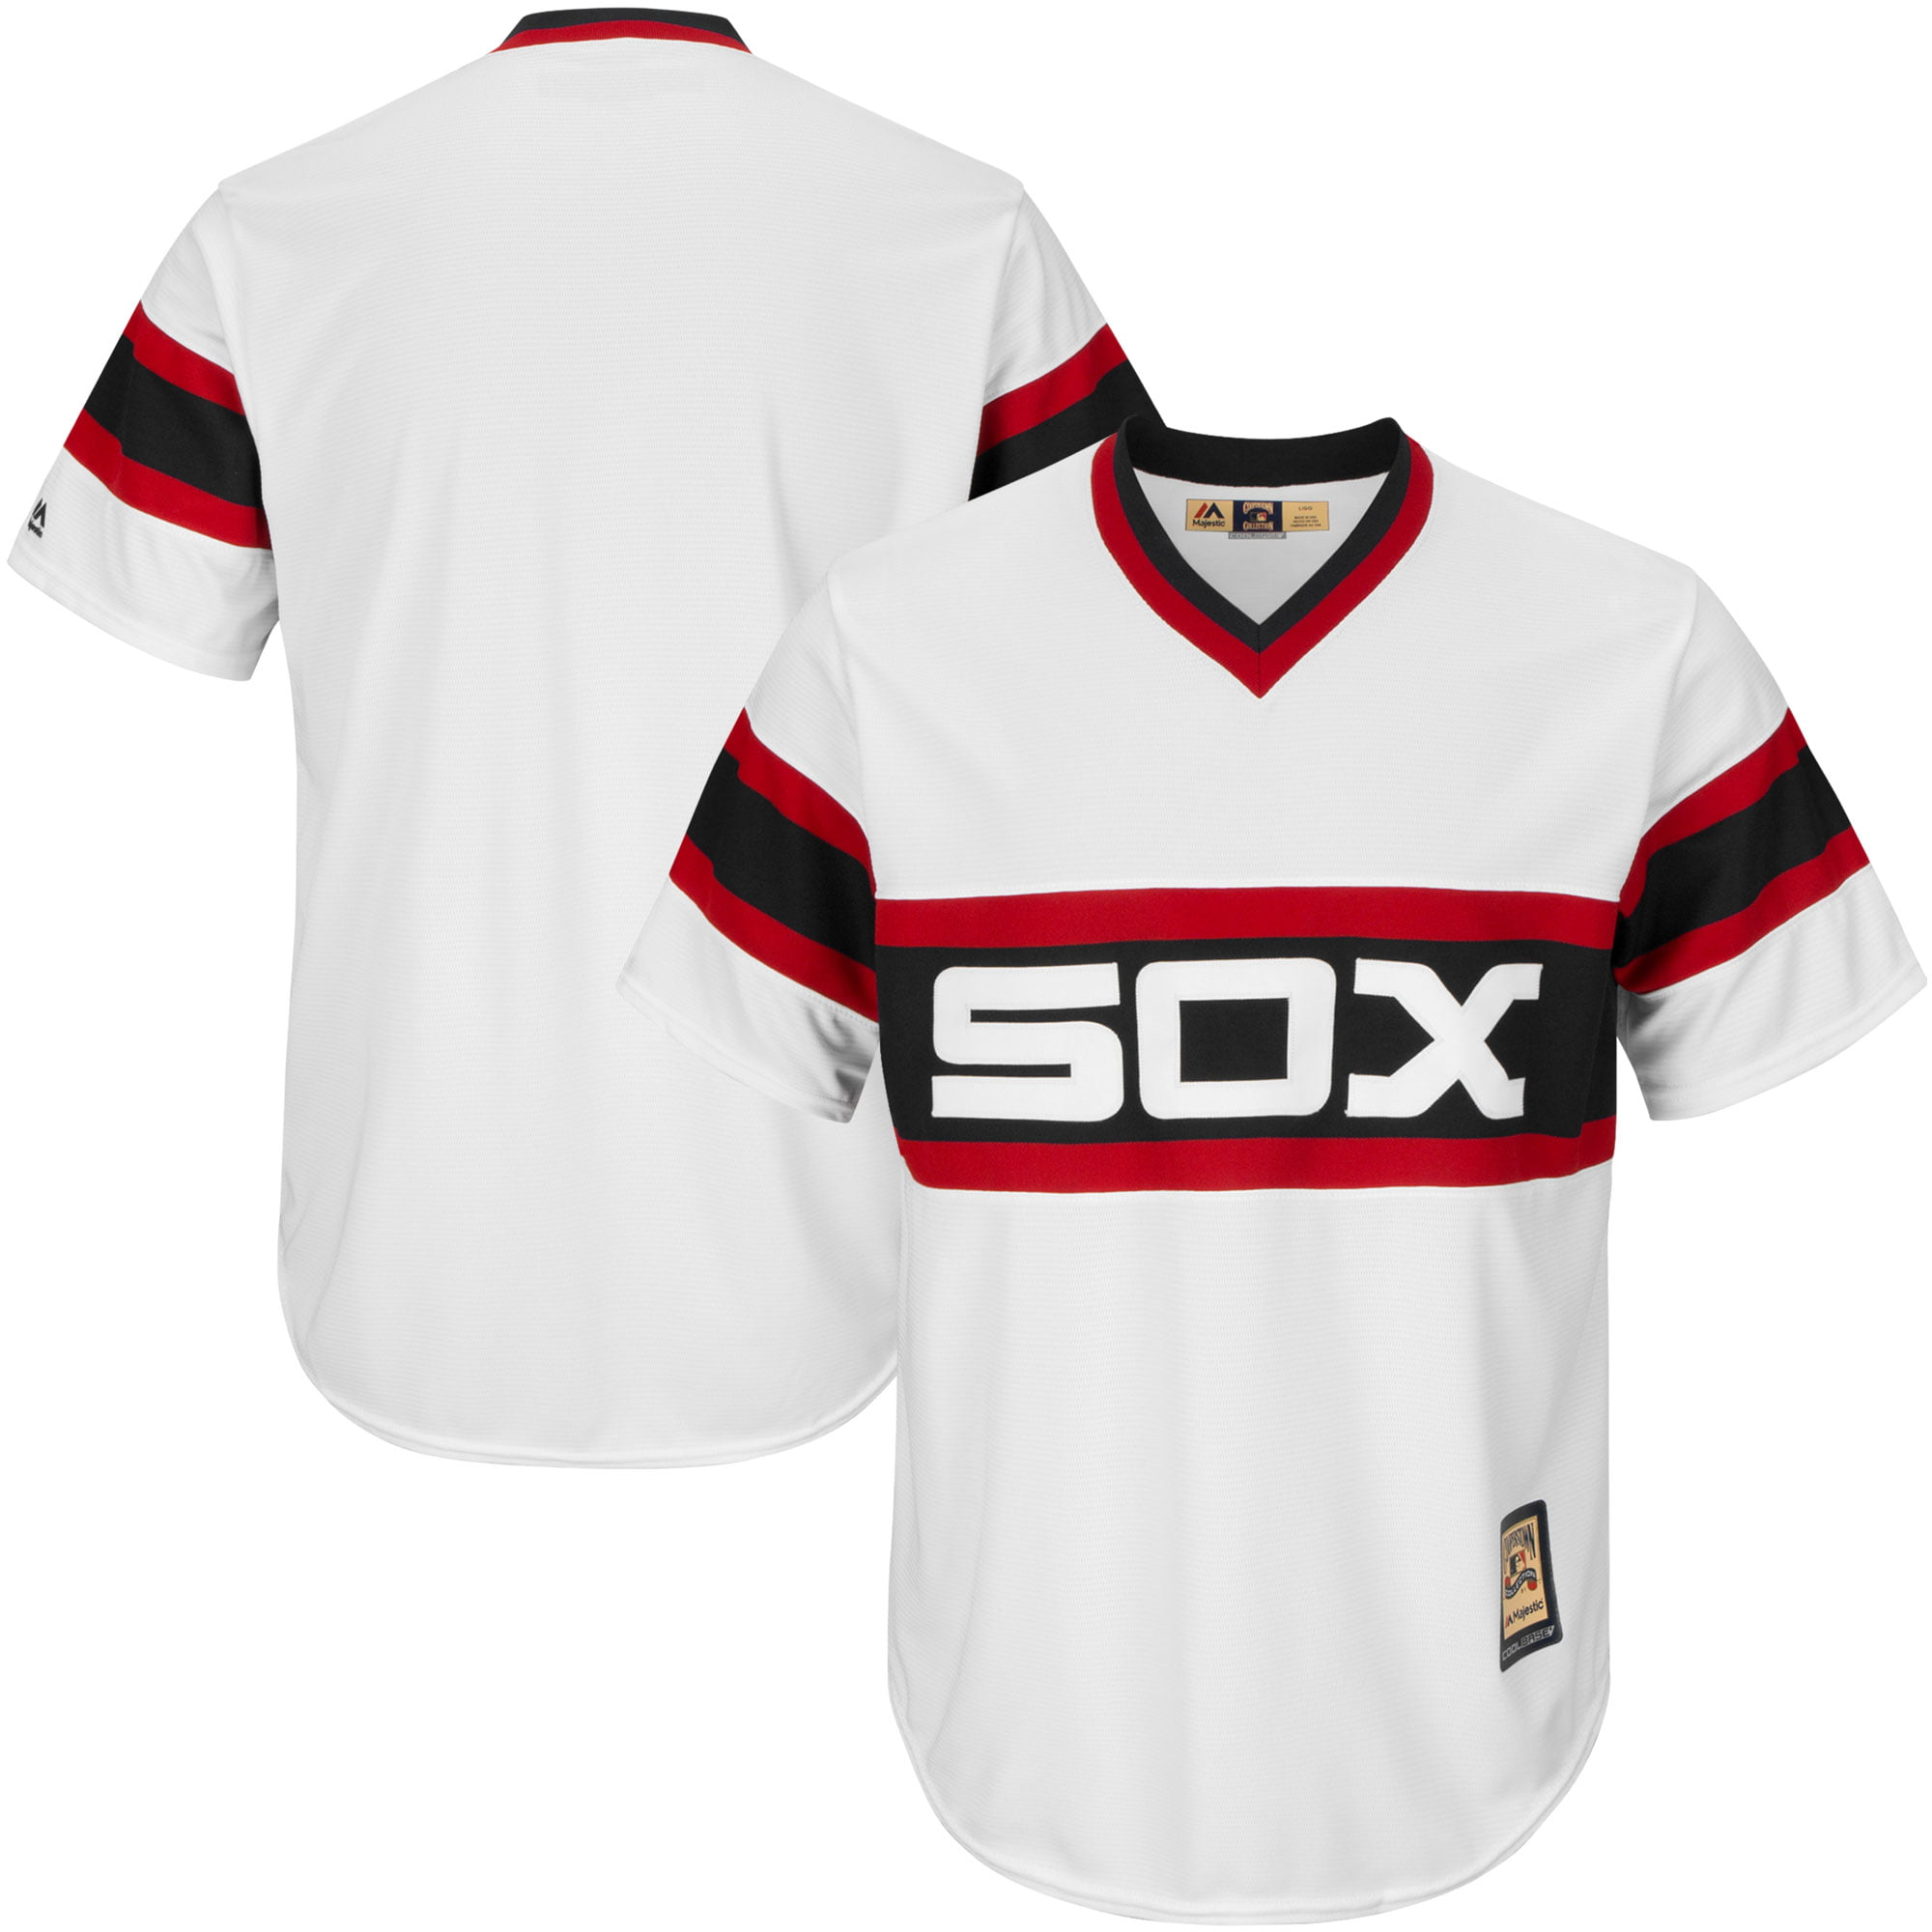 Chicago White Sox Majestic Big & Tall Cooperstown Cool Base Jersey White by Profile